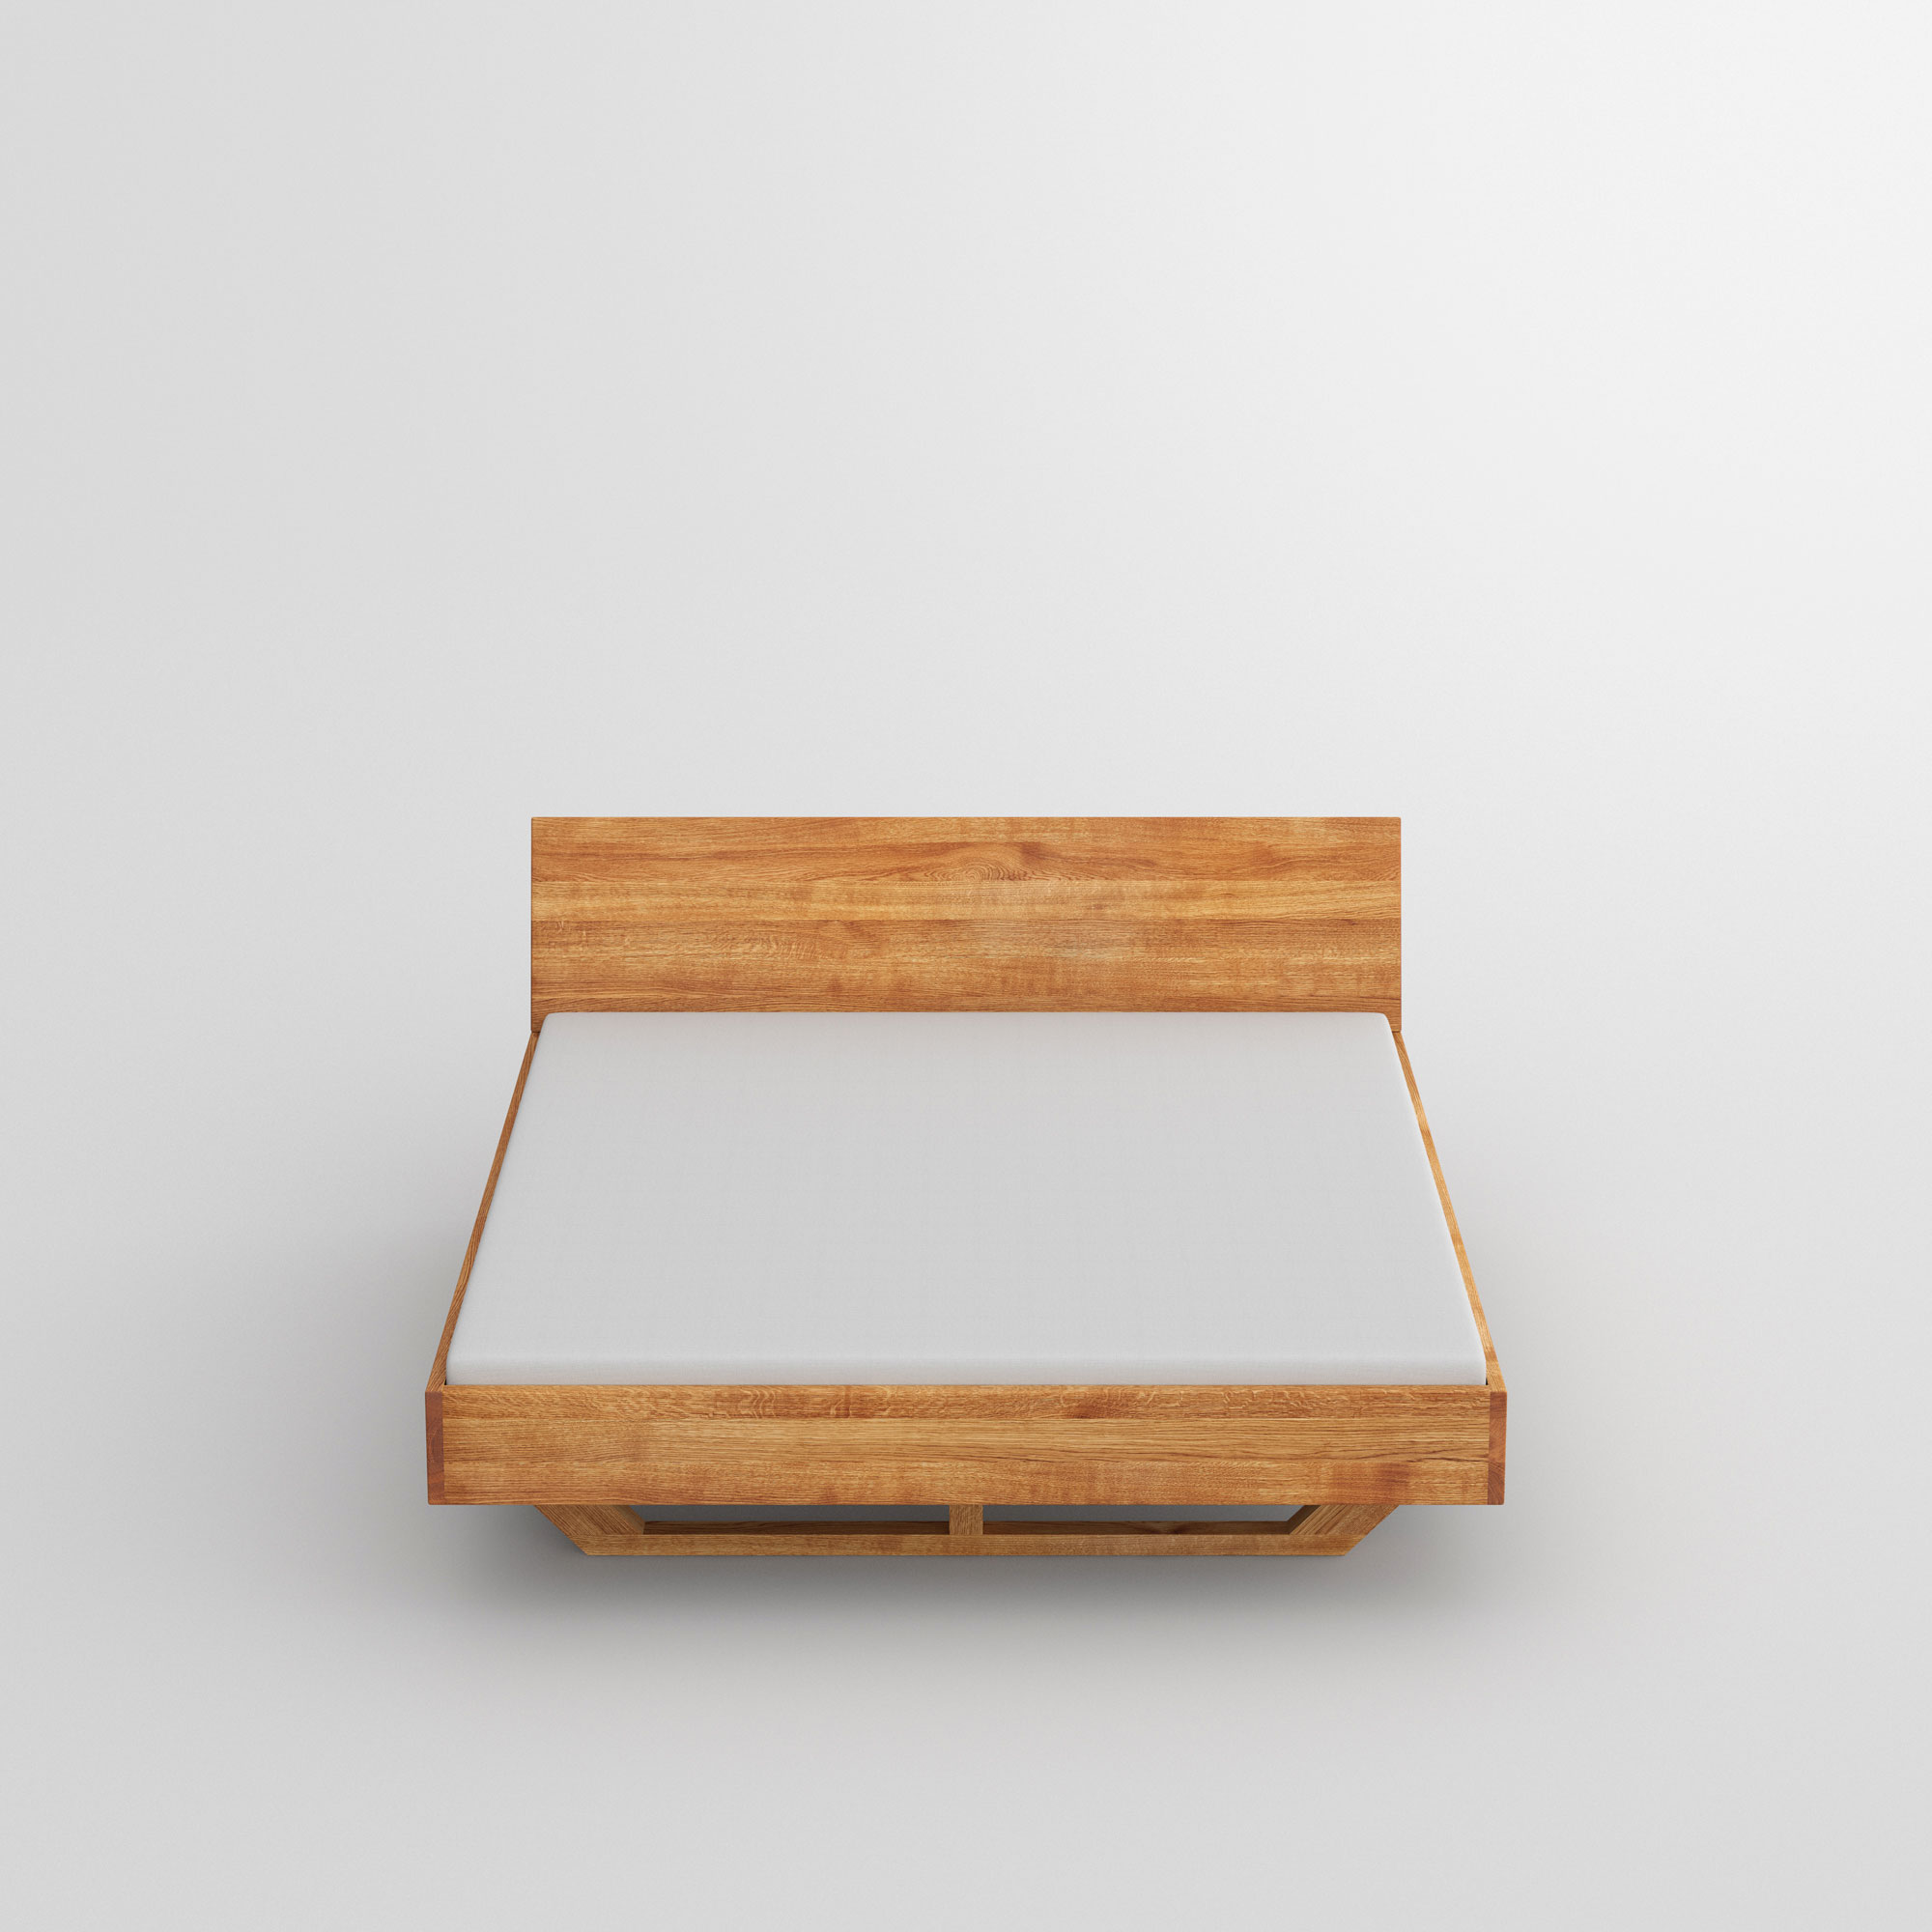 Solid Wooden Bed QUADRA SOFT cam2 custom made in solid wood by vitamin design